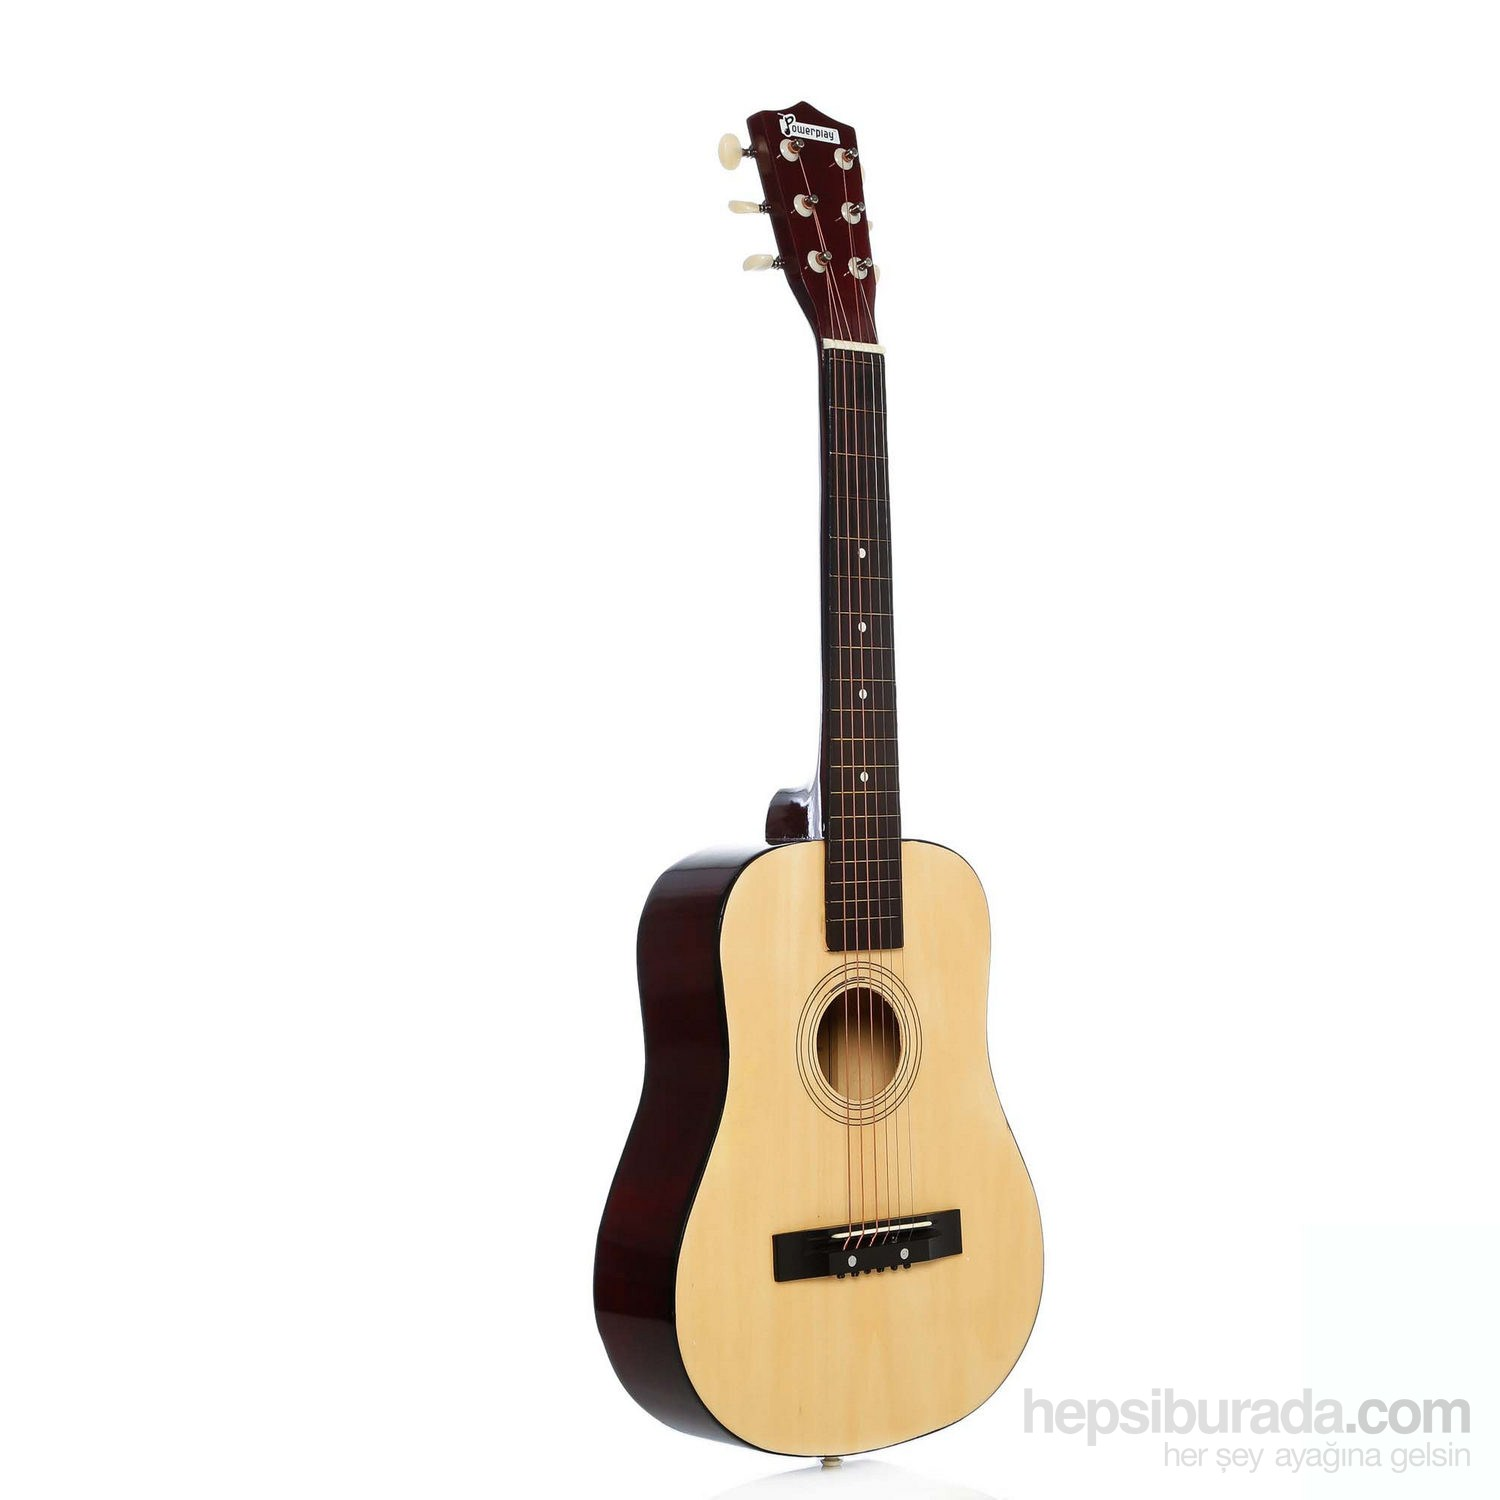 "Powerplay KSP1100A 30"" Akustik Gitar"